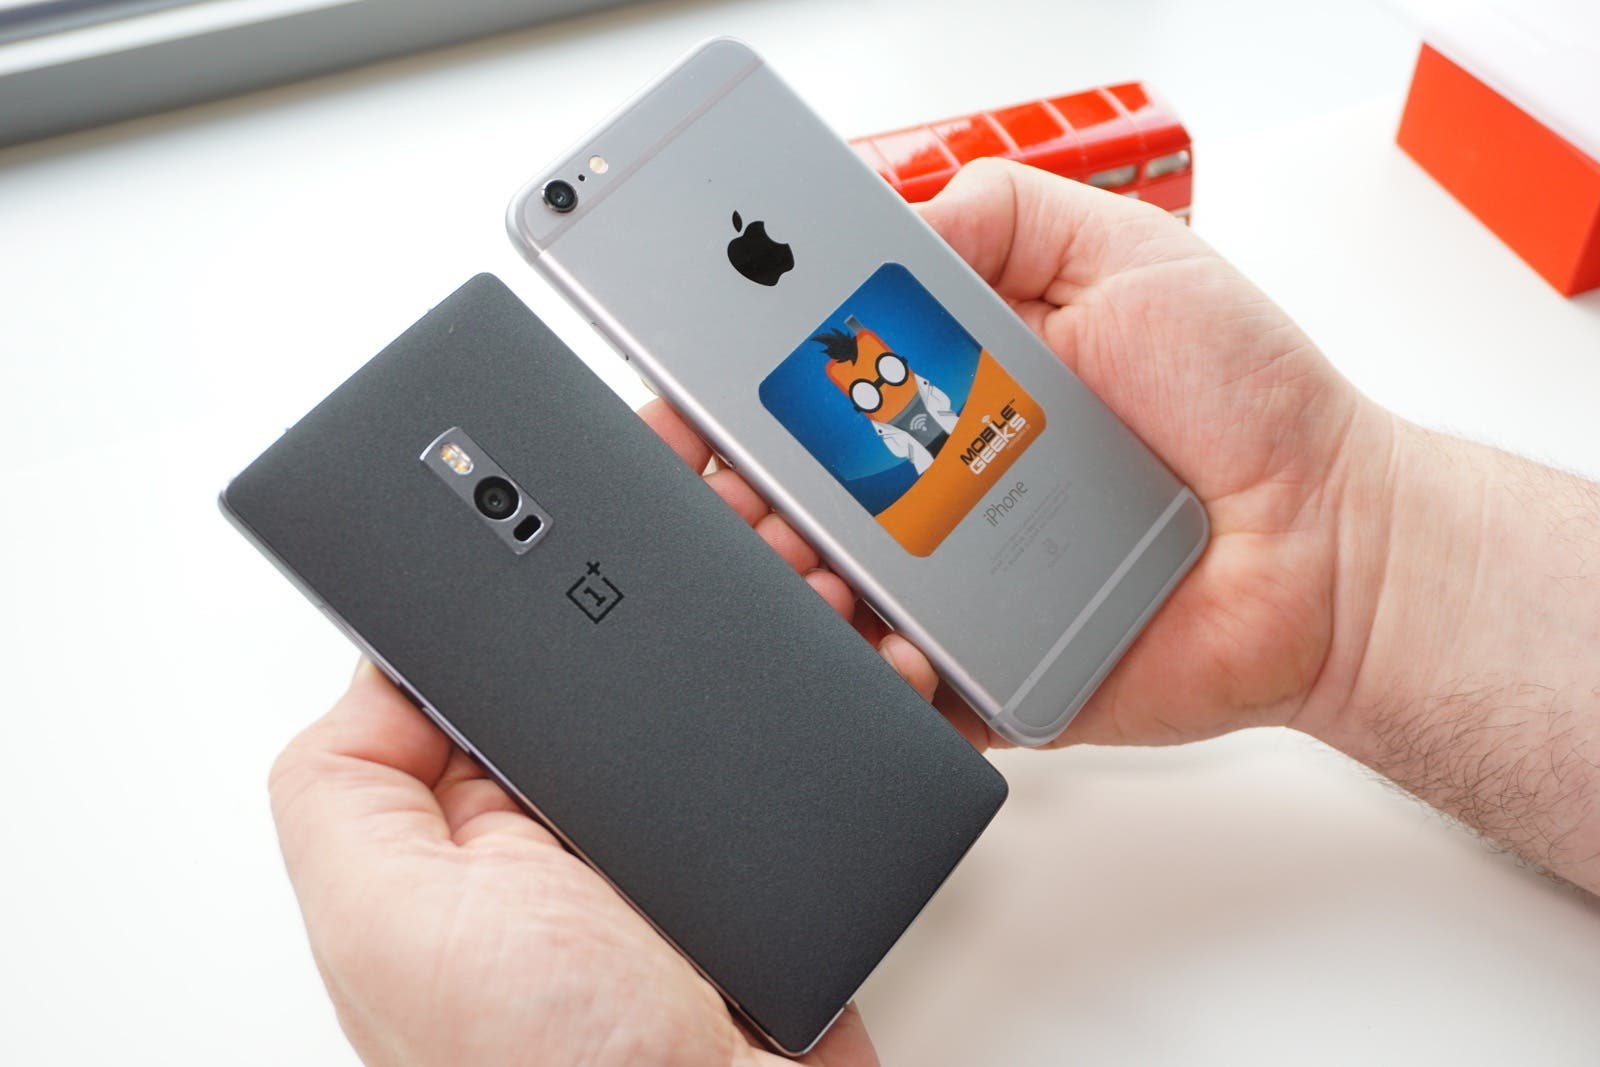 oneplus 2 vs iphone 6 plus in der hand